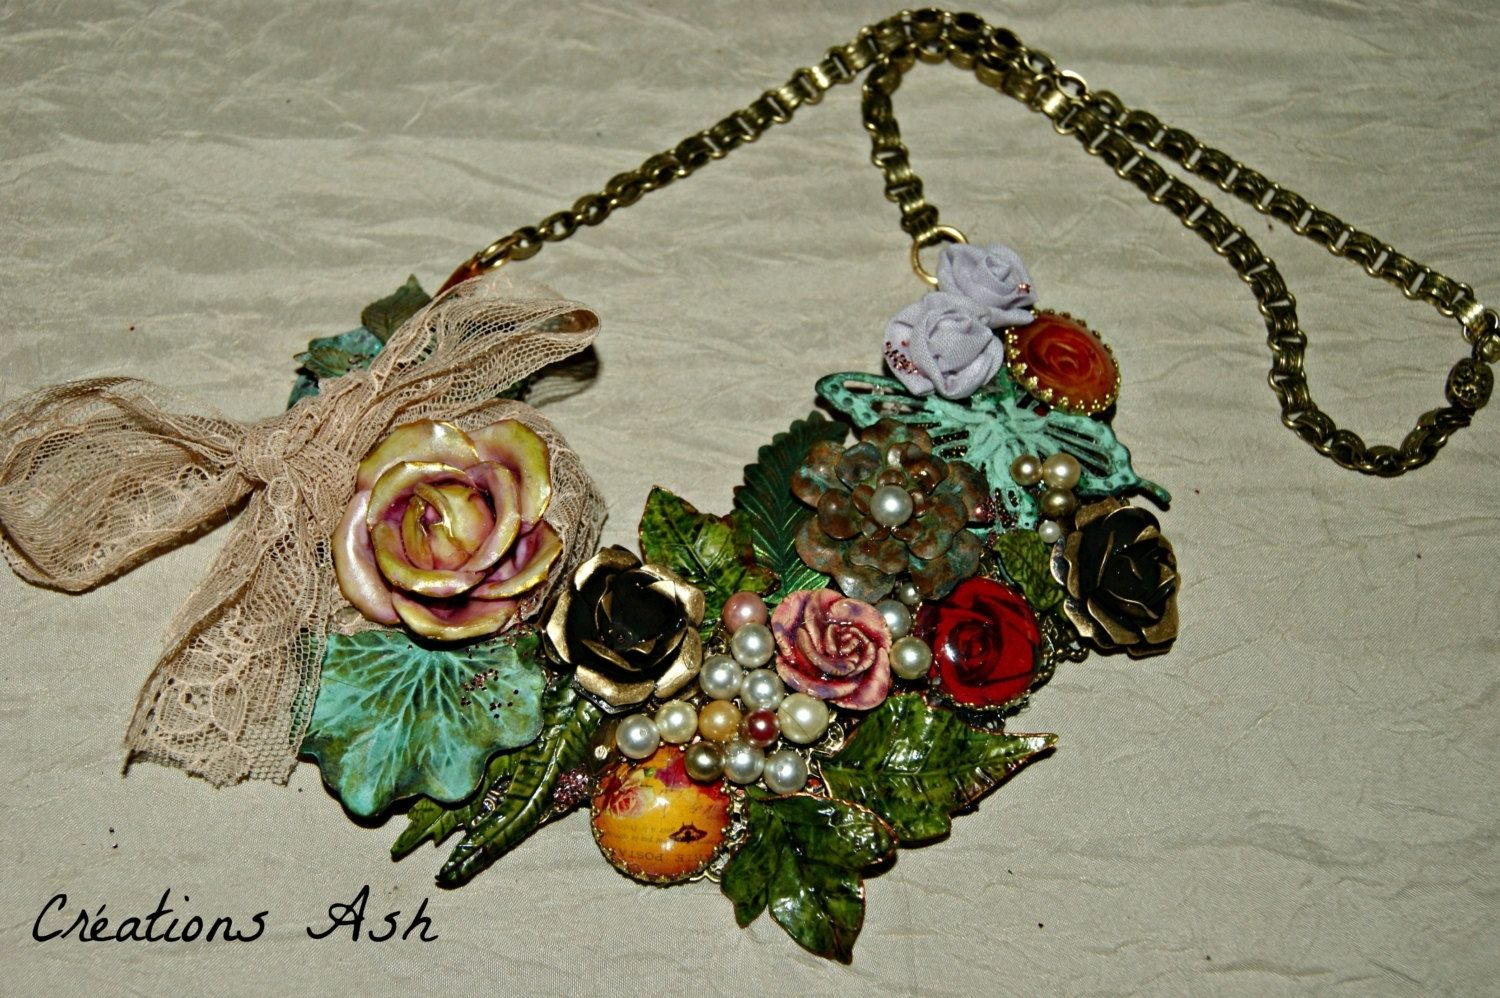 Rose Garden Creations: Hand Crafted Shabby Chic Assemblage Necklace